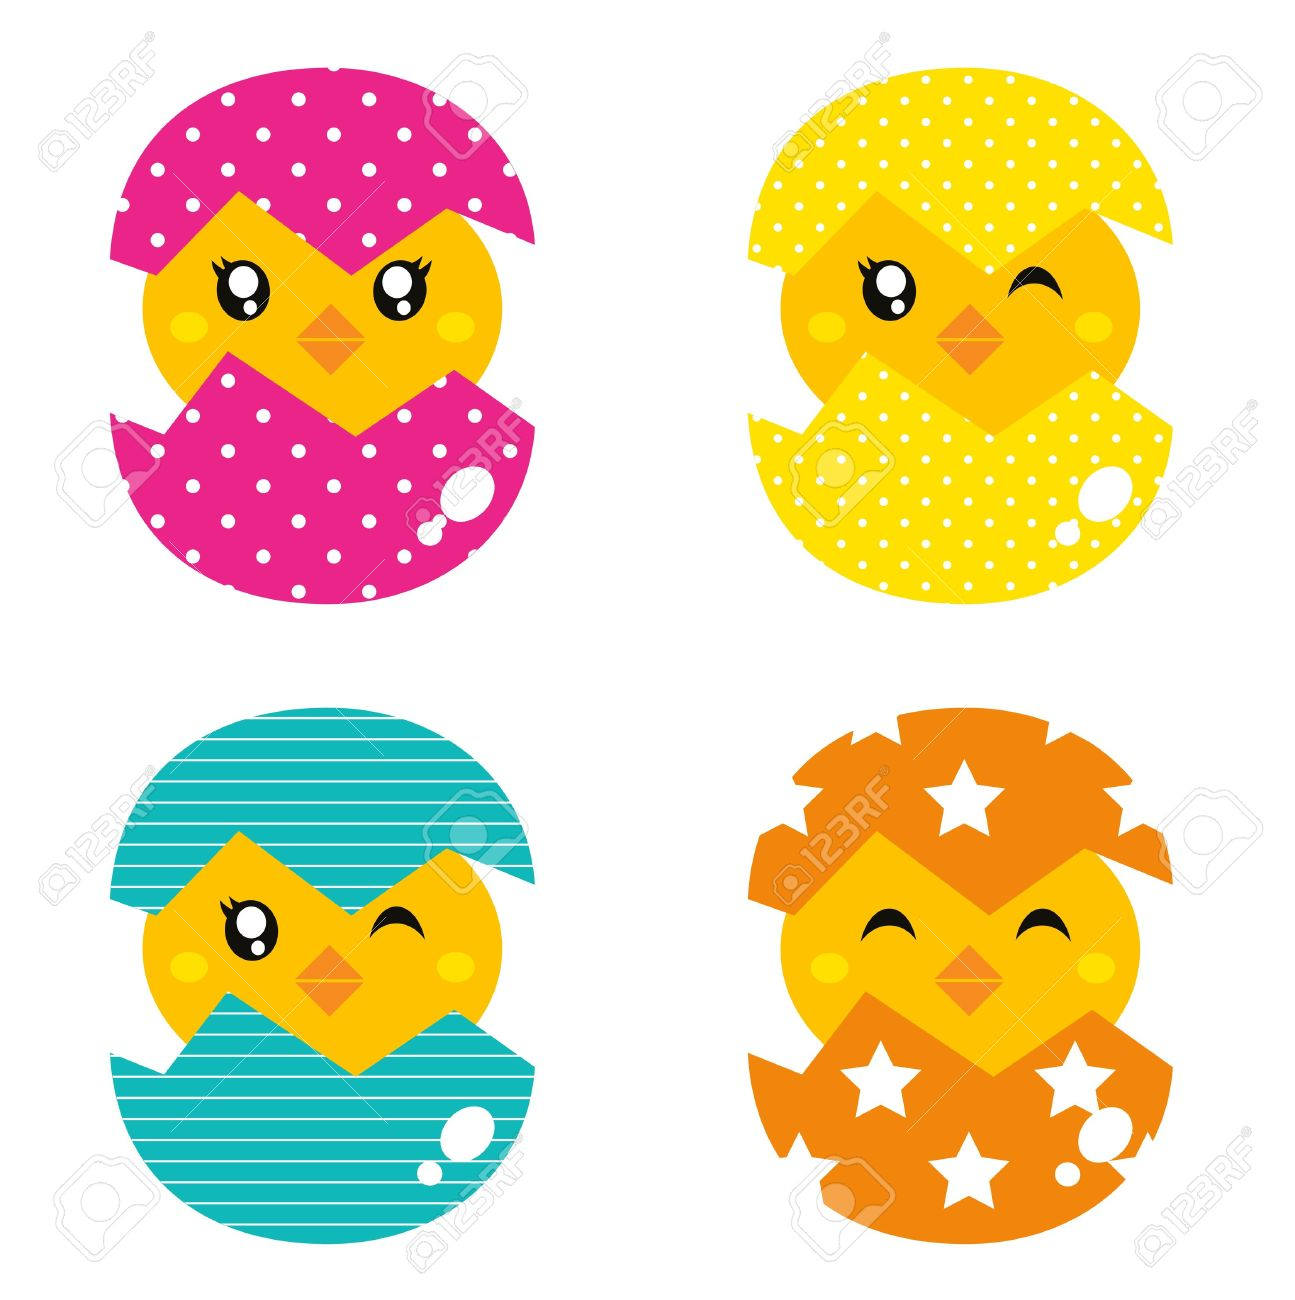 1295x1300 With Chicken Easter Egg Clipart, Explore Pictures